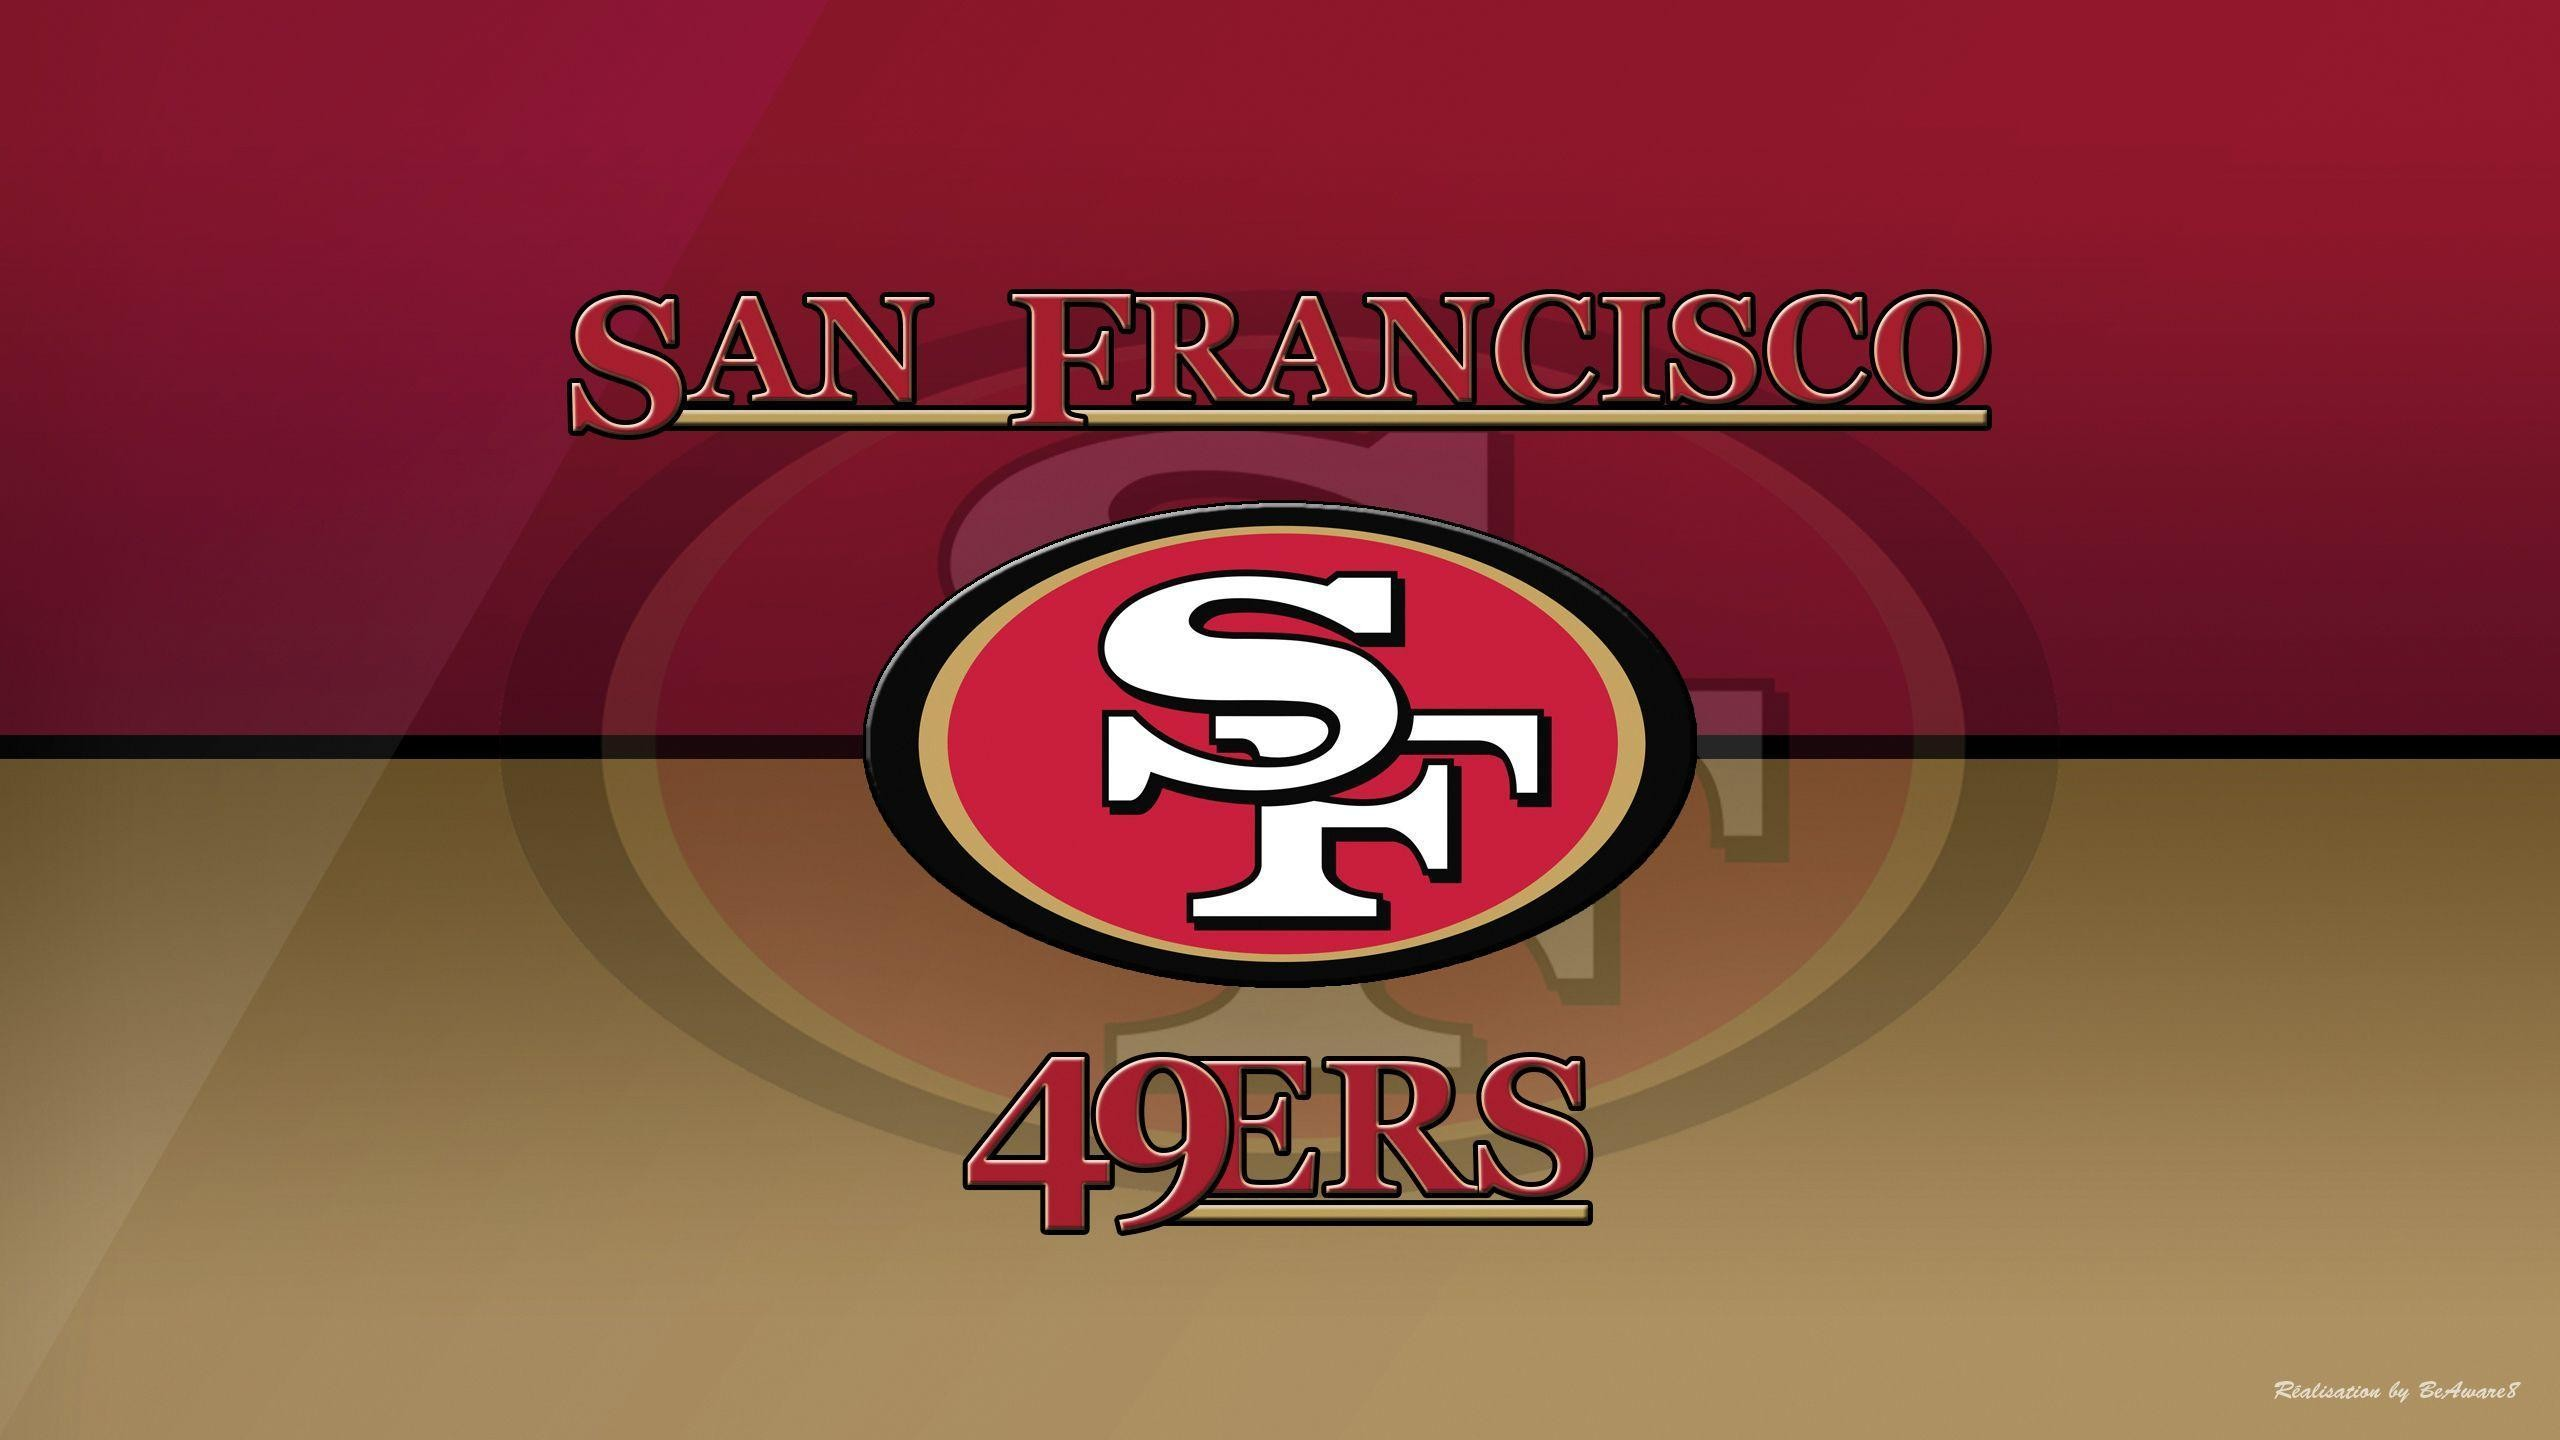 San francisco 49ers wallpapers 2560x1440 49ers 2016 schedule wallpapers wallpaper cave download voltagebd Image collections